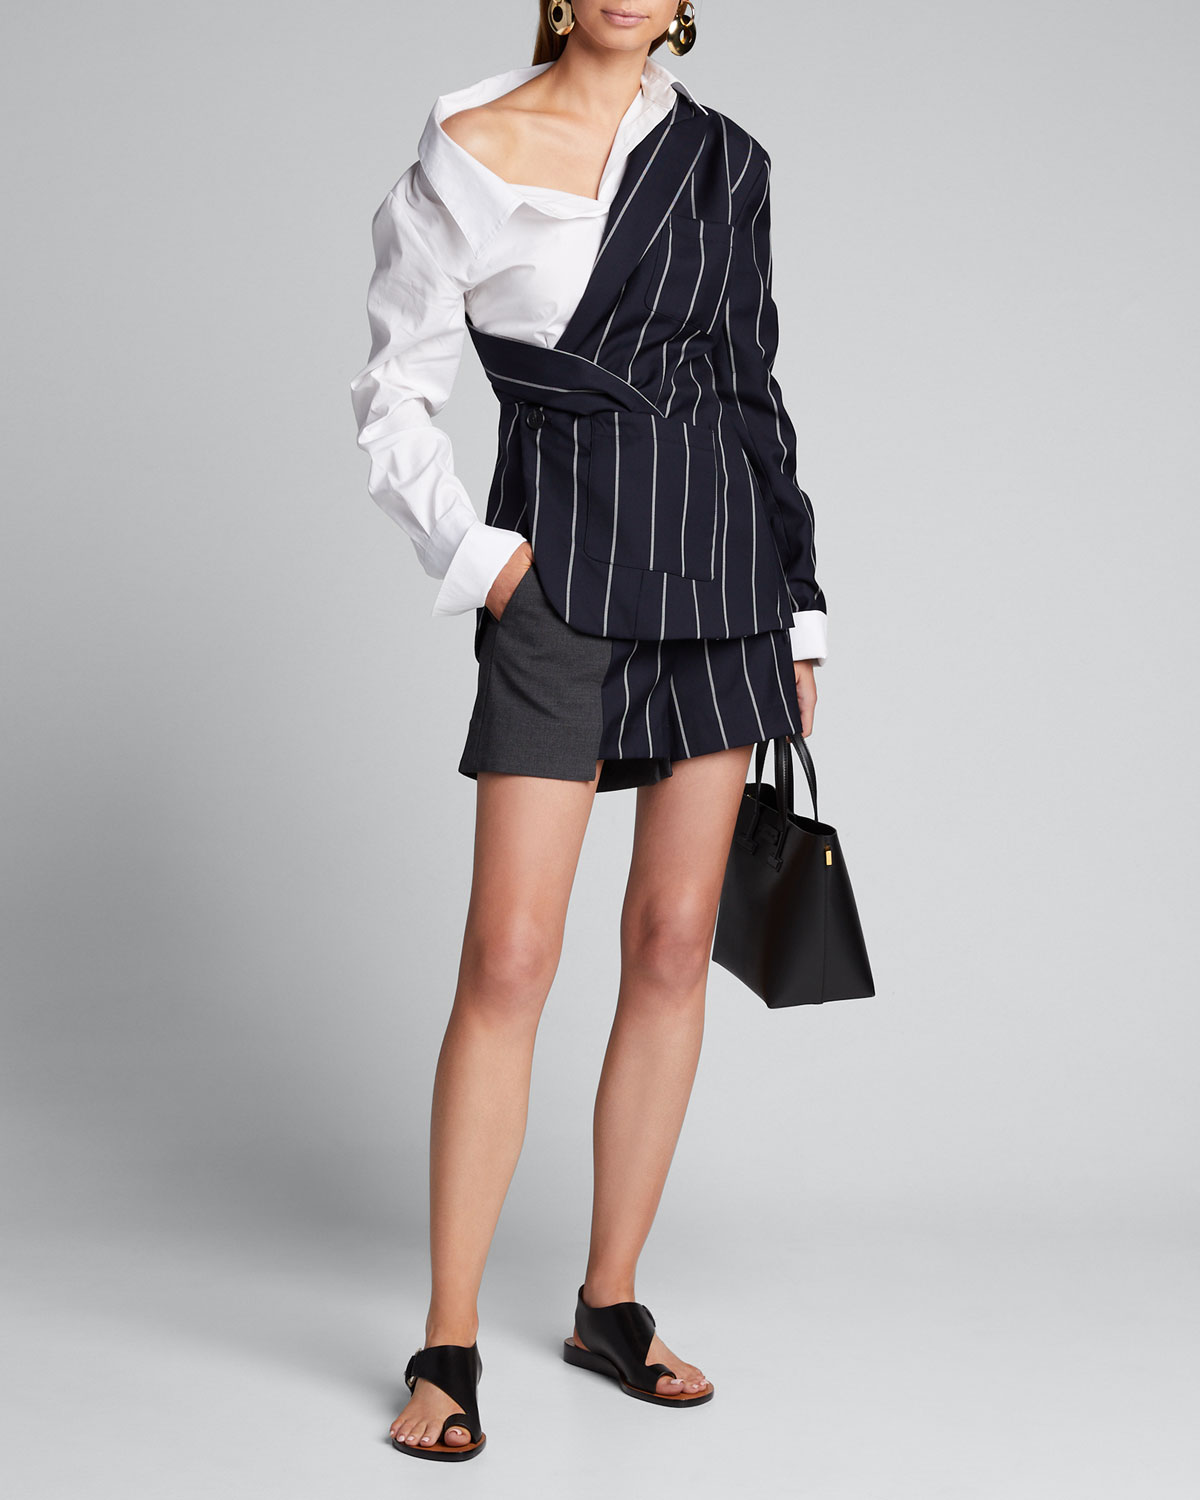 Monse Shorts PATCHWORK-PINSTRIPED EXTENDED SHORTS